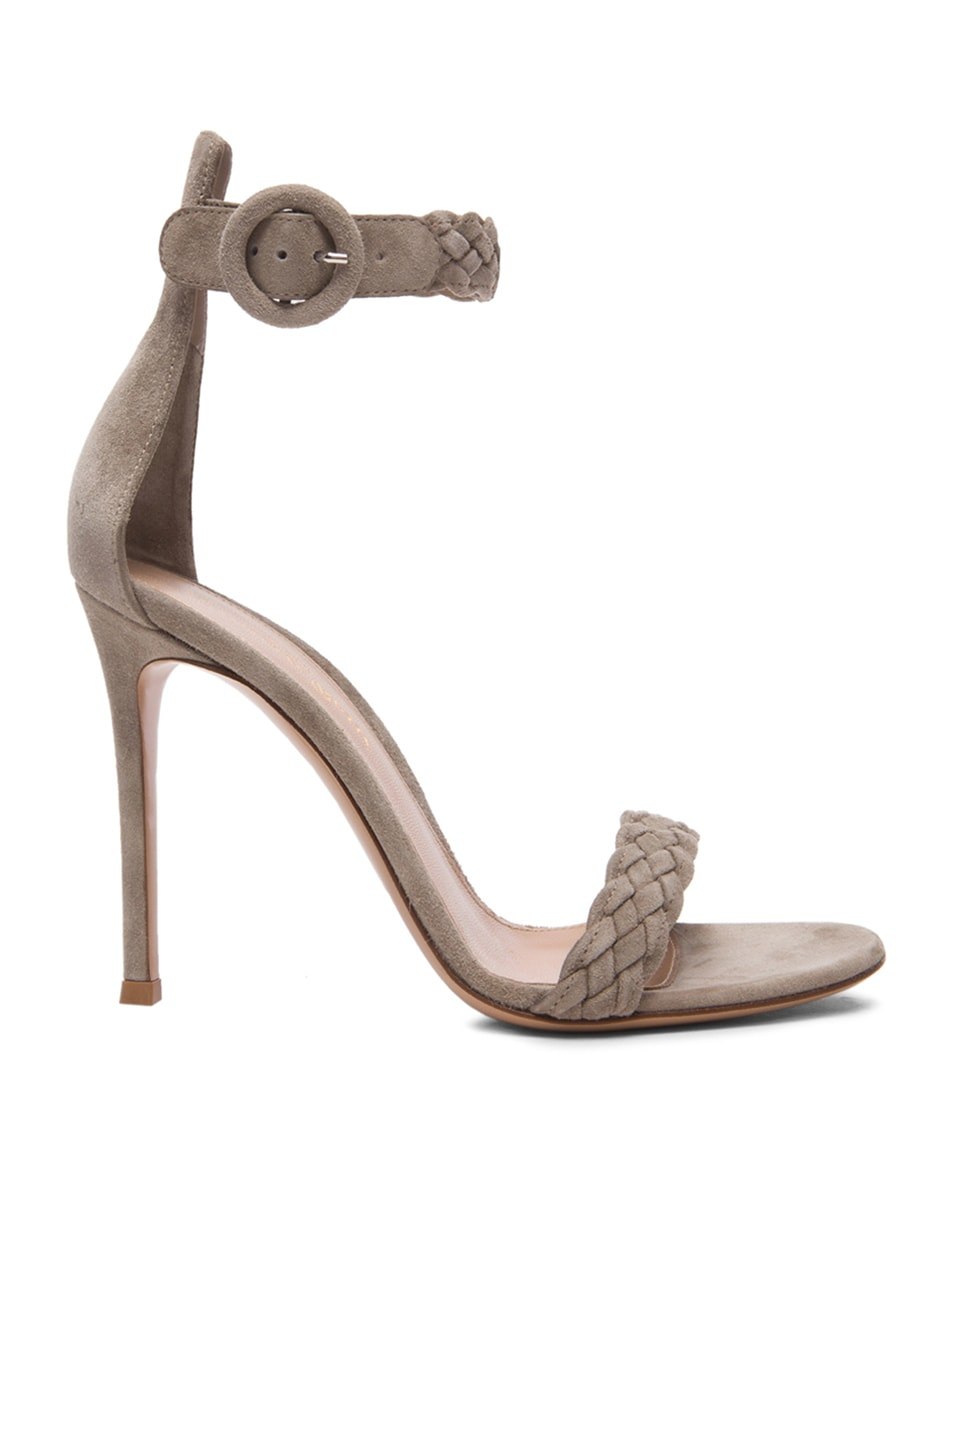 Image 1 of Gianvito Rossi Braided Ankle Strap Suede Heels in Dust Suede